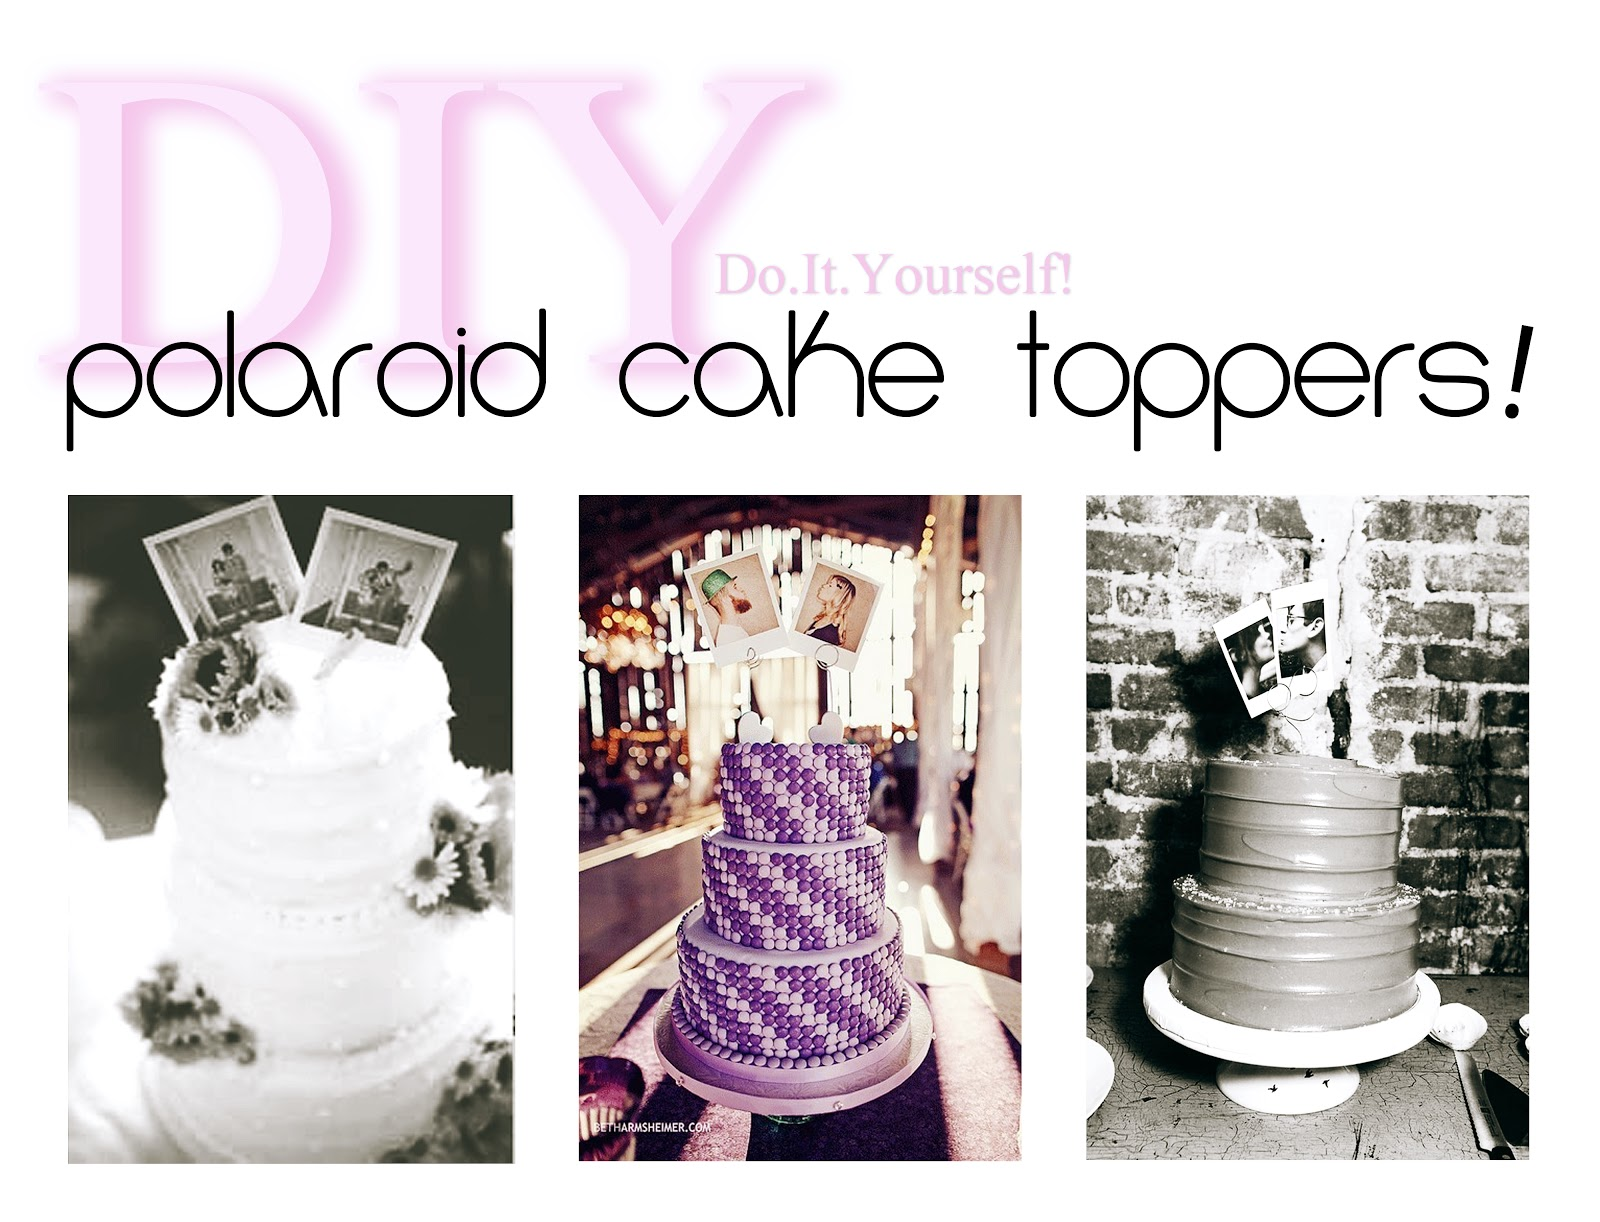 Something borrowed diy polaroid cake toppers 11192012 solutioingenieria Image collections